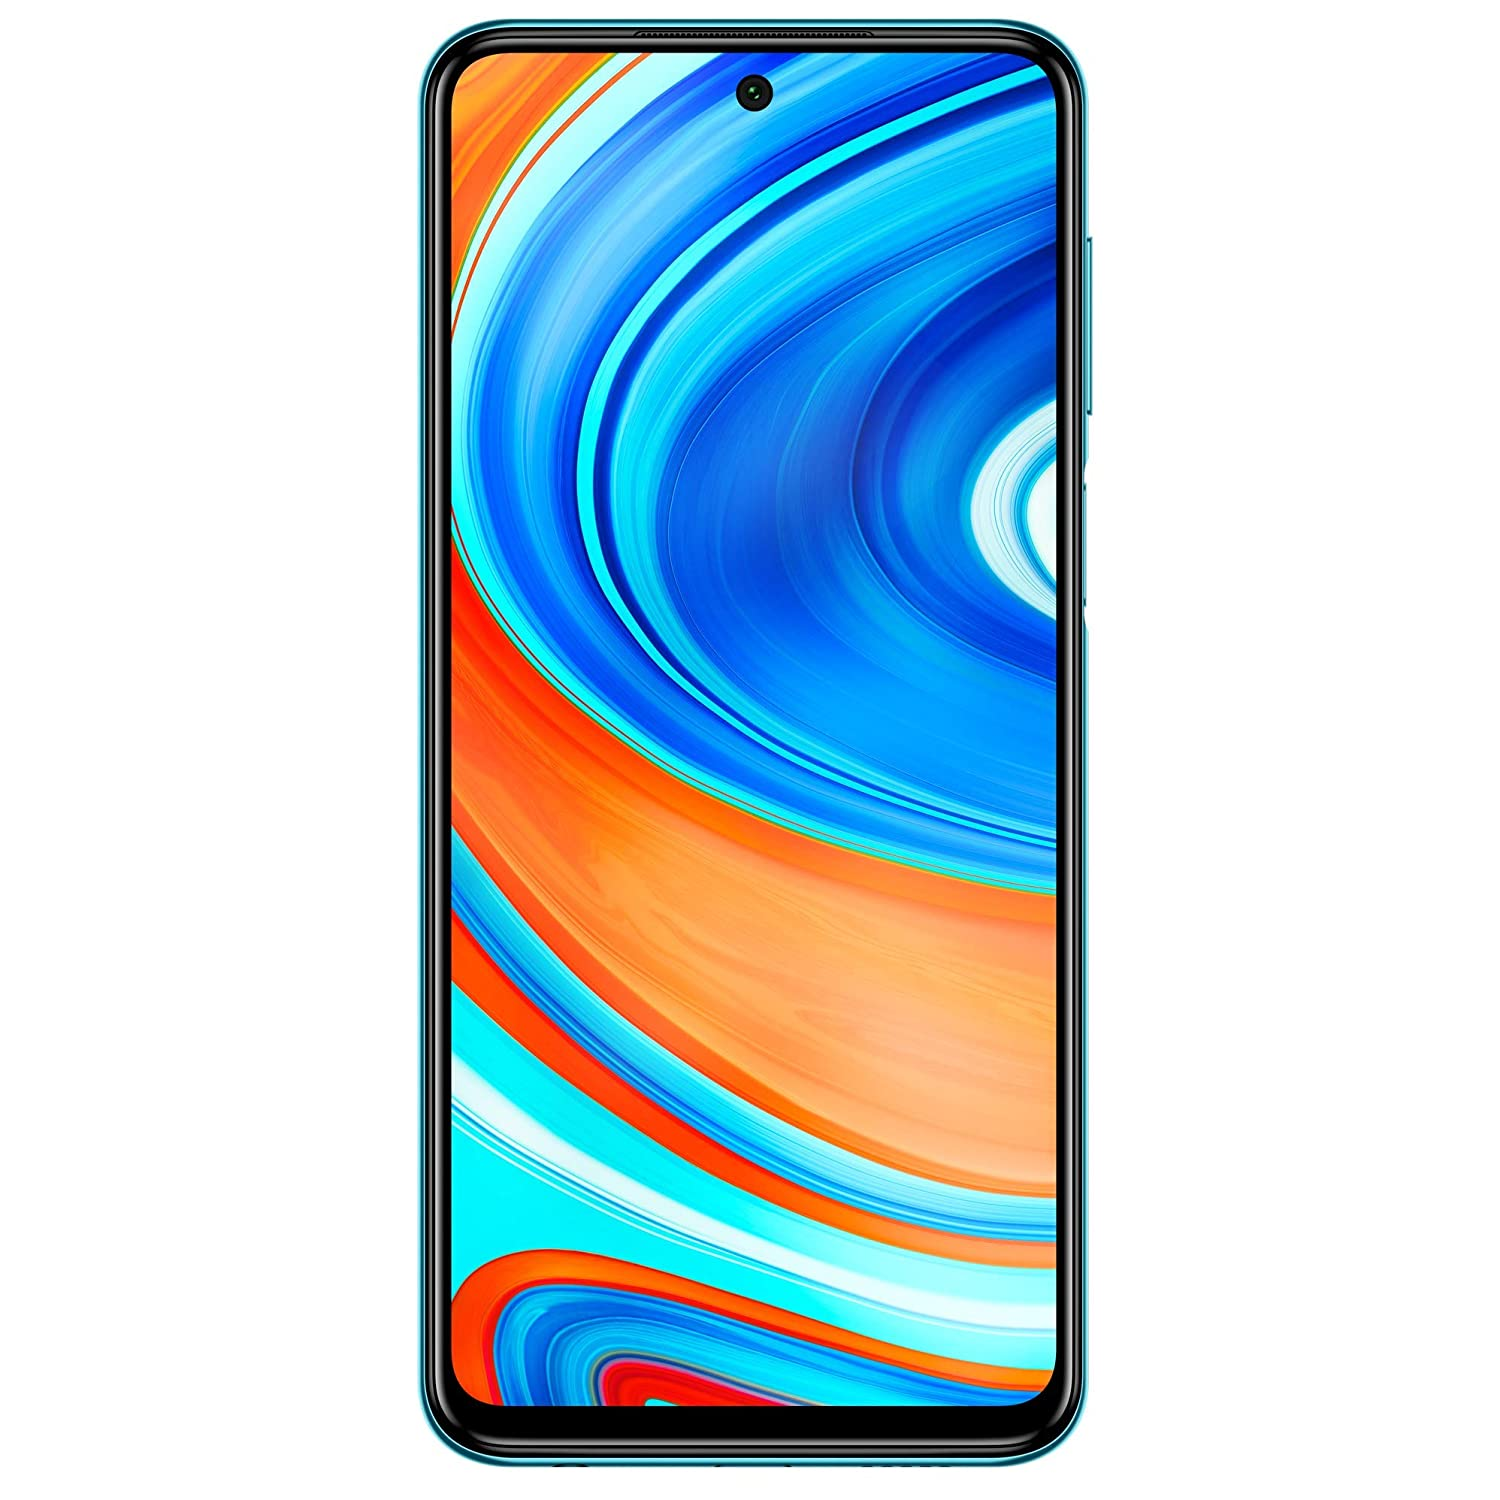 Redmi Note 9 Pro Max (Aurora Blue, 6GB RAM, 64GB Storage)- 64MP Quad Camera & Latest 8nm Snapdragon 720G & Alexa Hands-Free